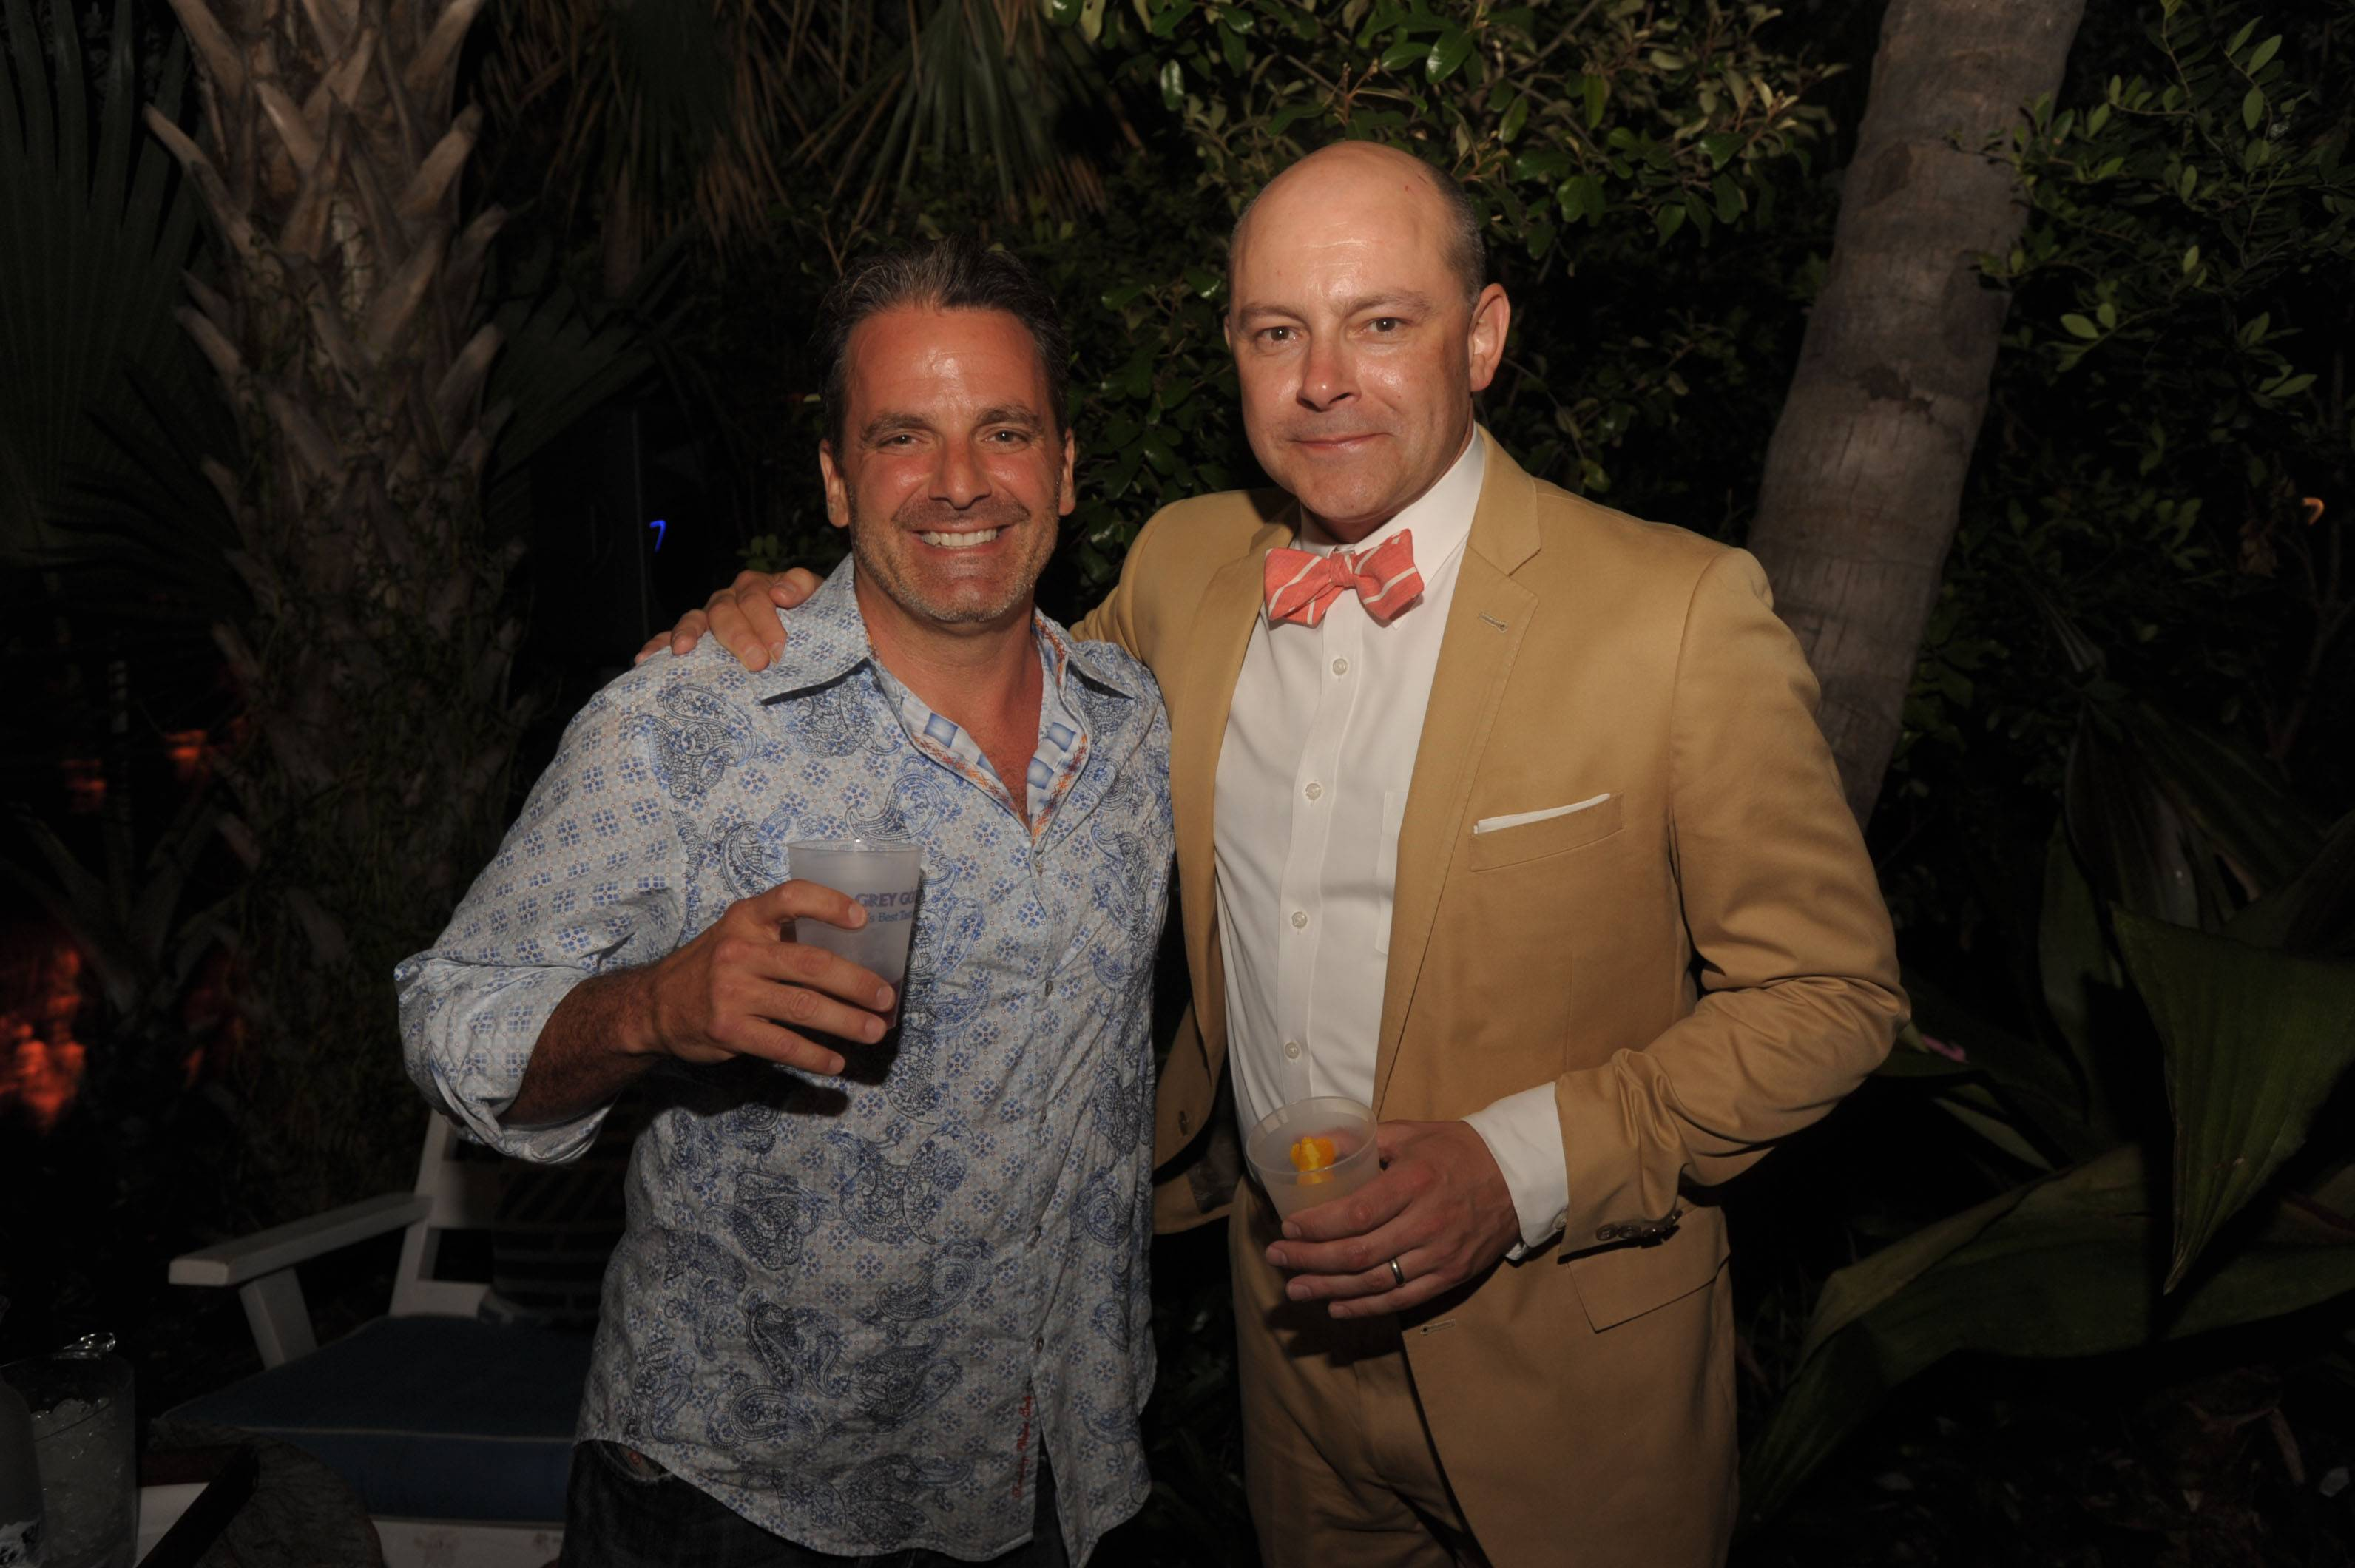 Ken Sheer & Rob Corddry